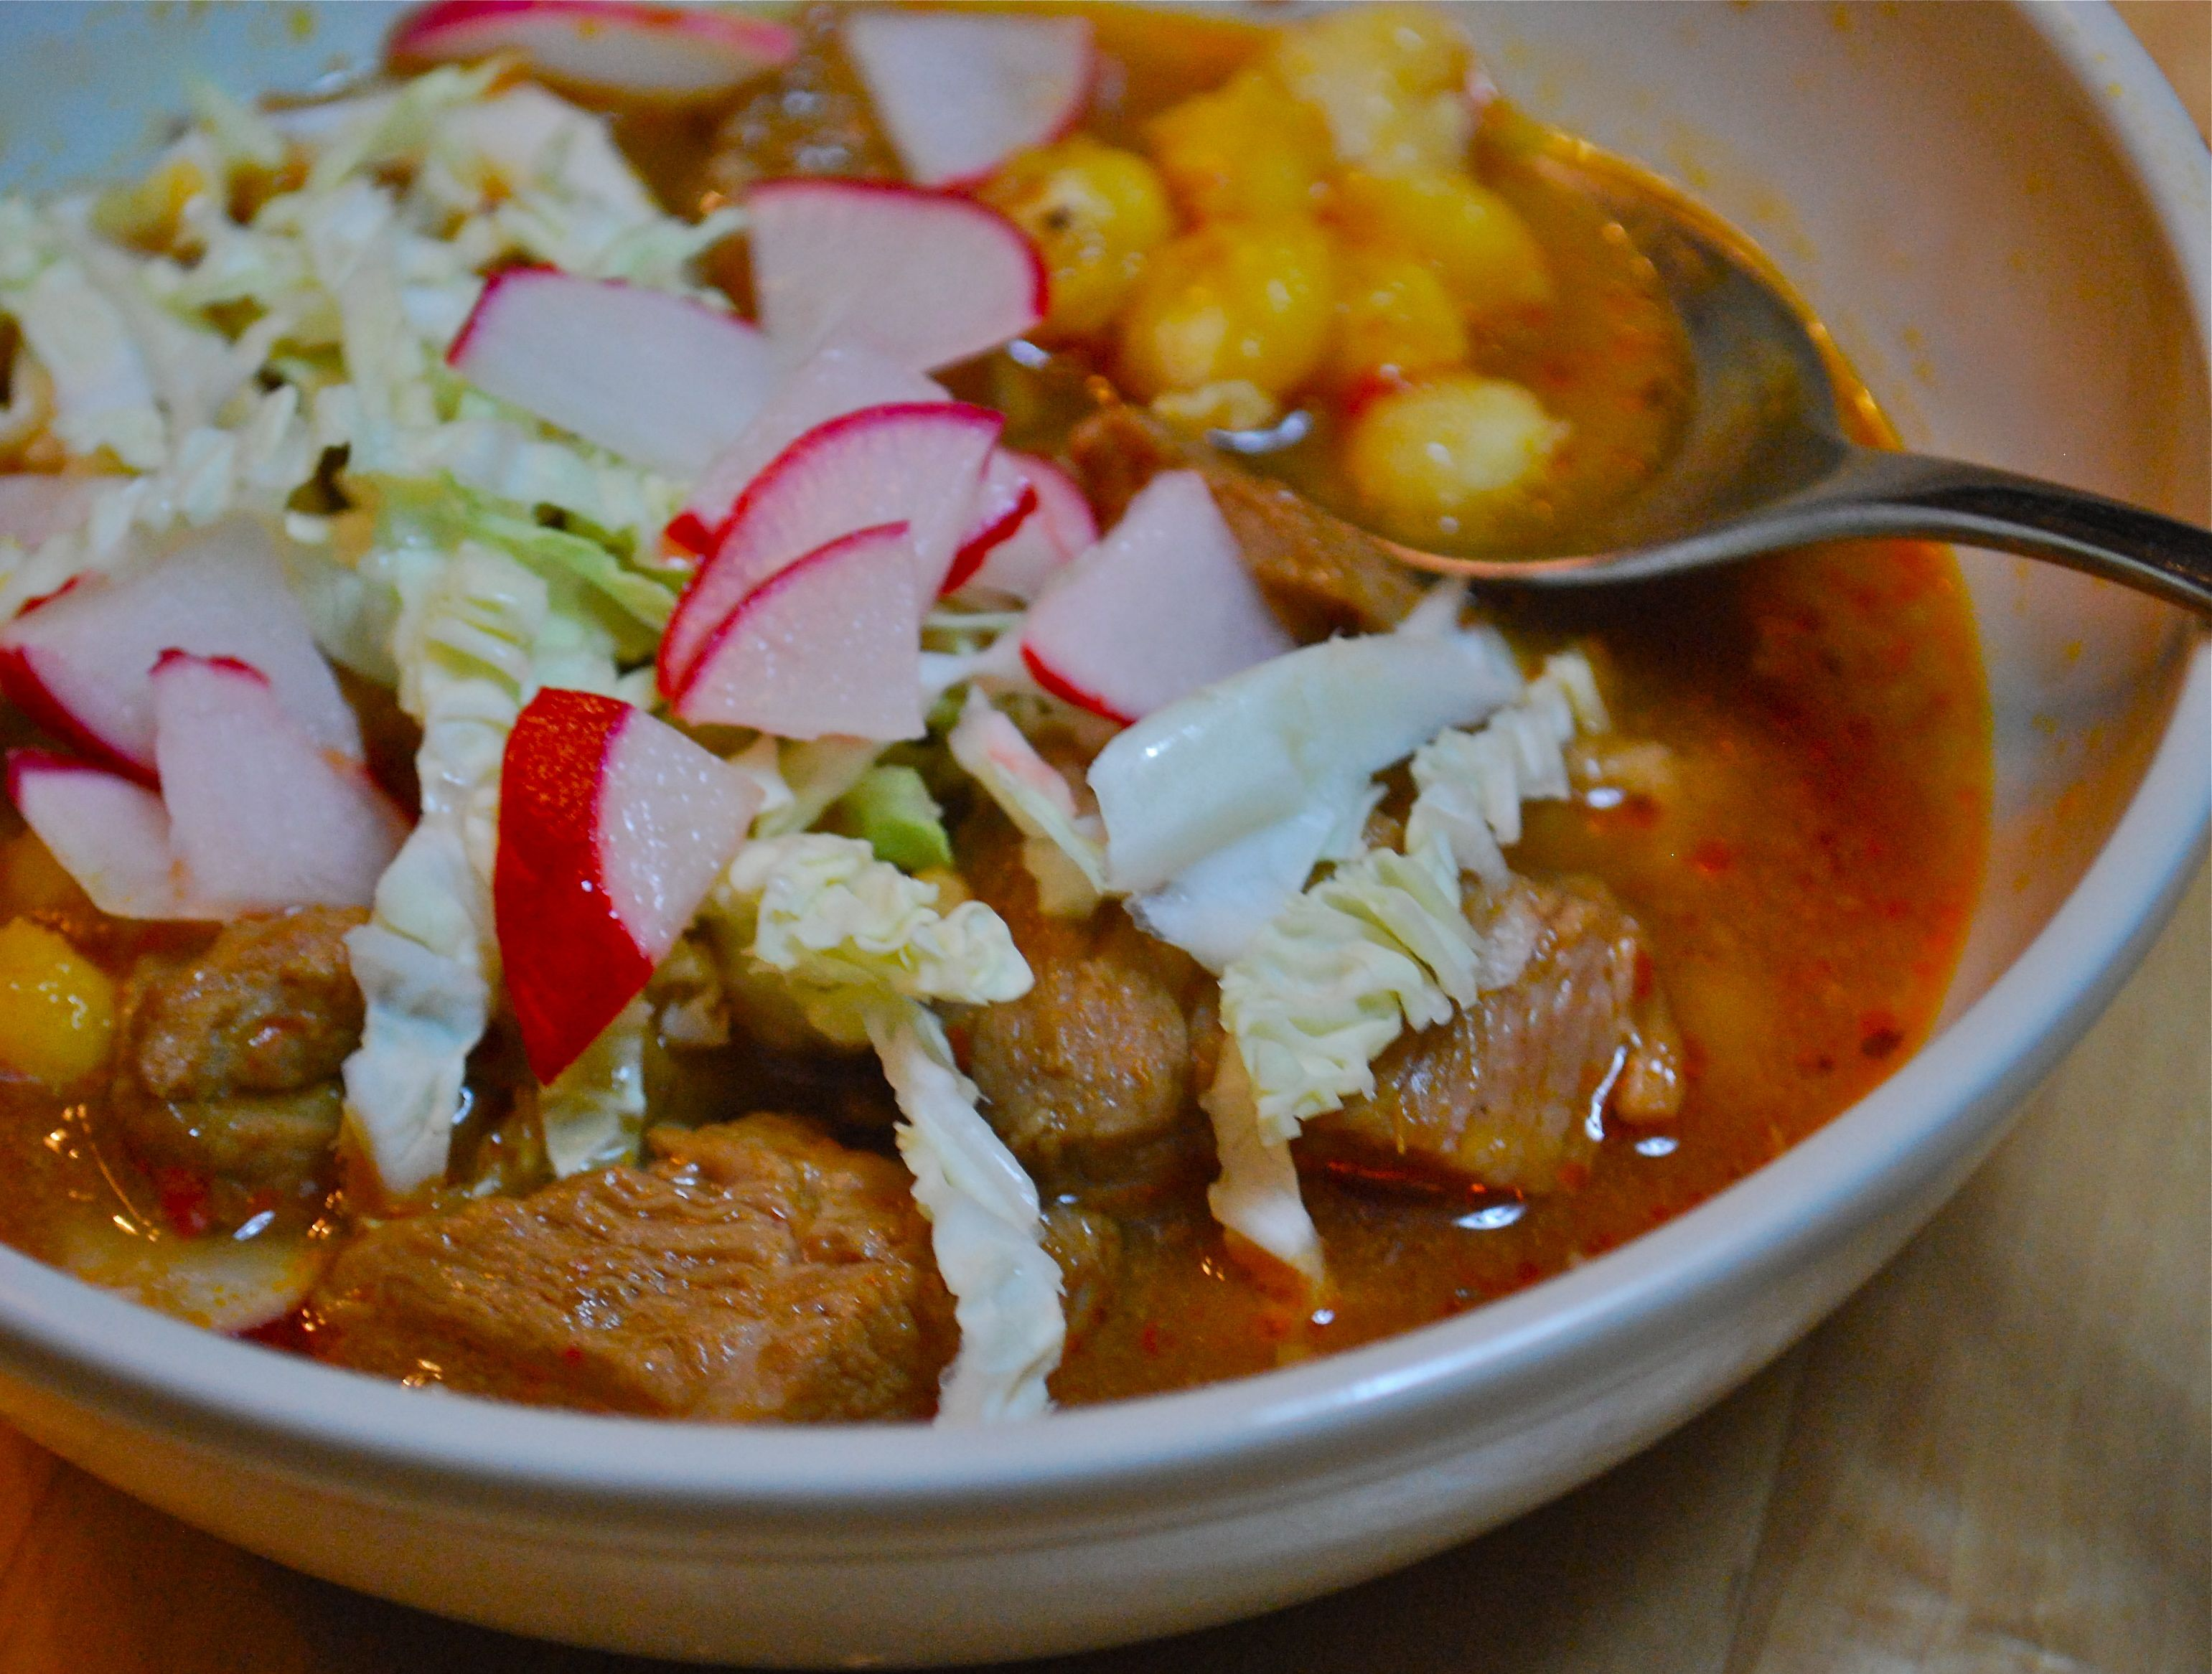 Warming Red Pozole Recipe on Food52